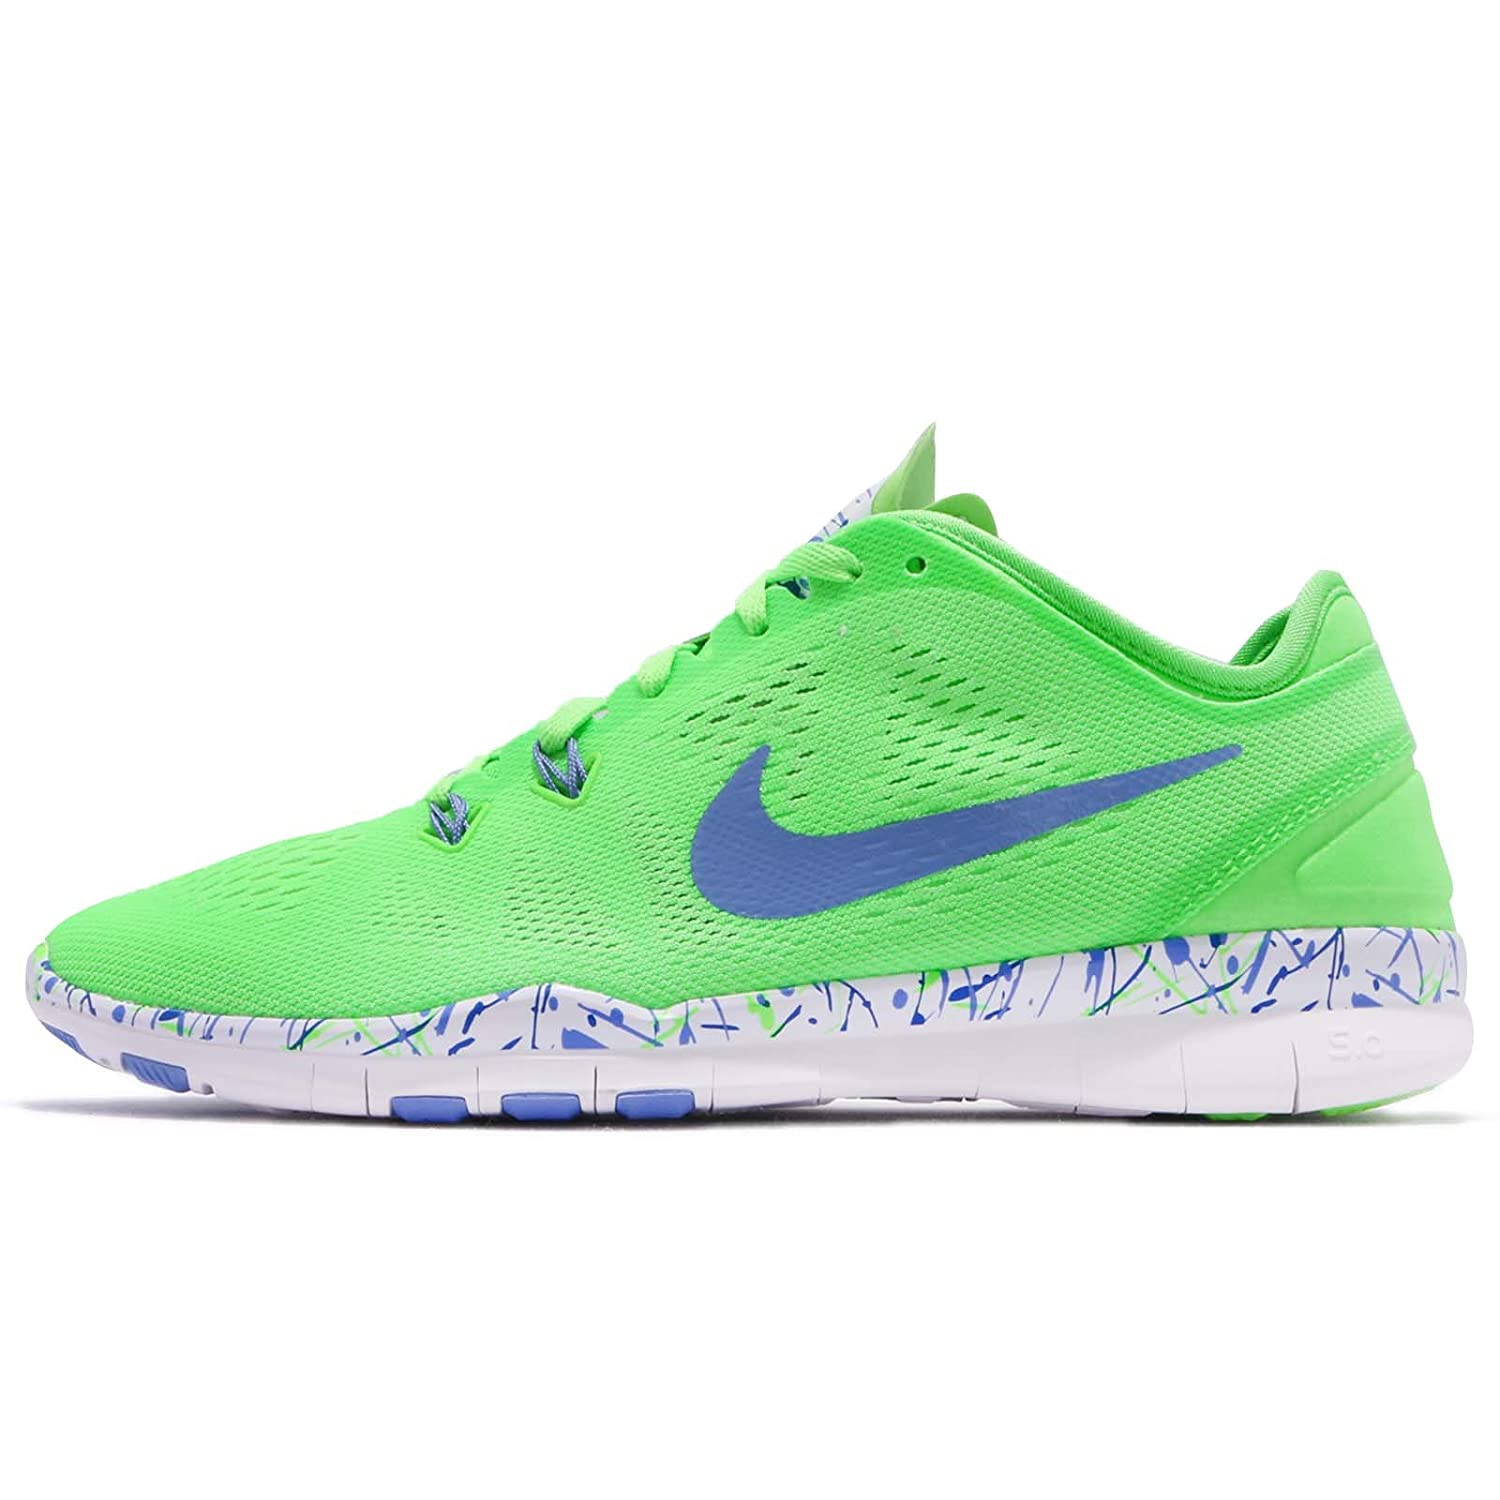 bd2a172d59a1 ... promo code for amazon nike womens free 5.0 tr fit training shoe print  voltage green white